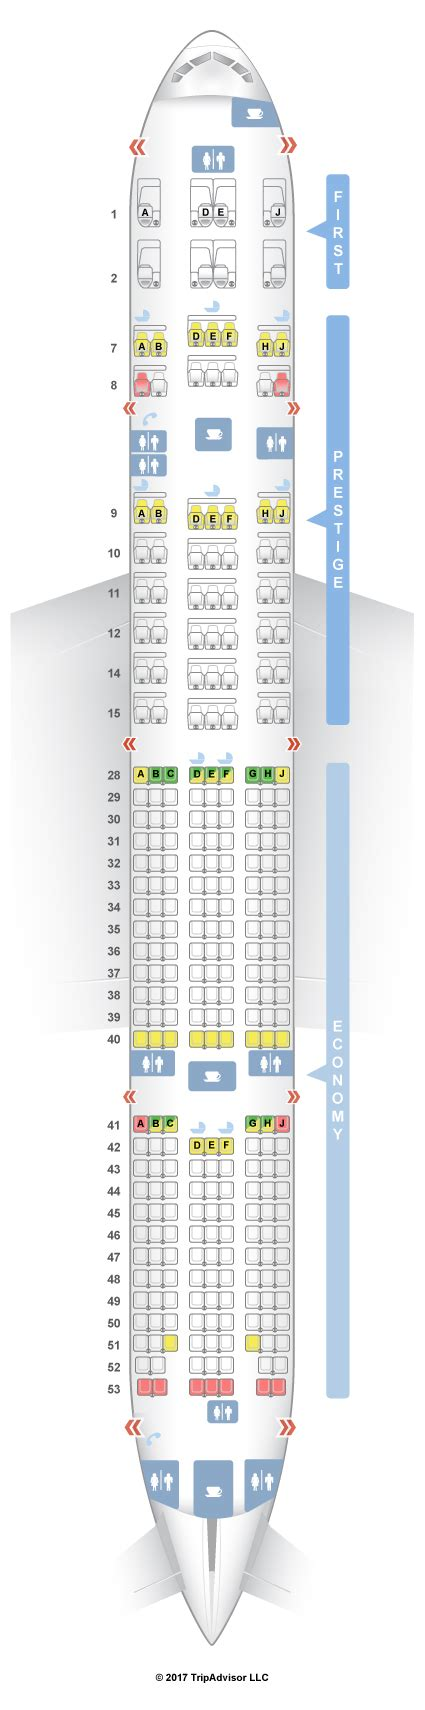 siege boeing 777 300er air seatguru seat map air boeing 777 300er 77w v2